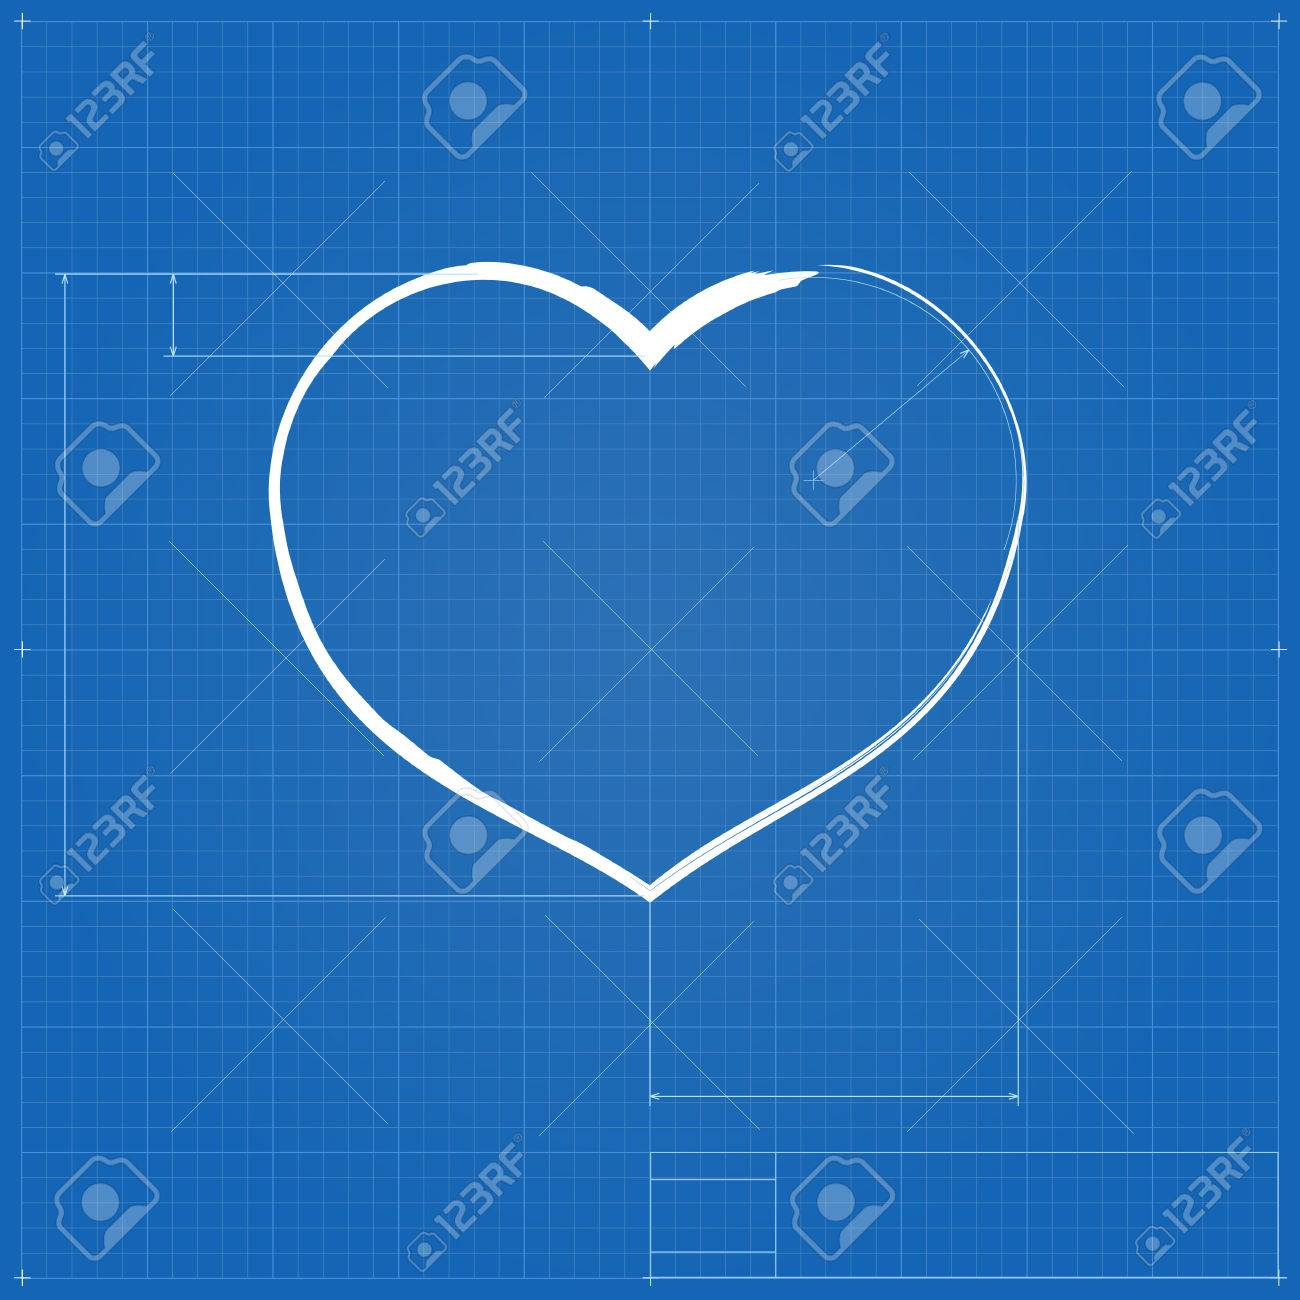 Heart symbol like blueprint drawing stylized drafting of gift heart symbol like blueprint drawing stylized drafting of gift sign on blueprint paper vector malvernweather Gallery